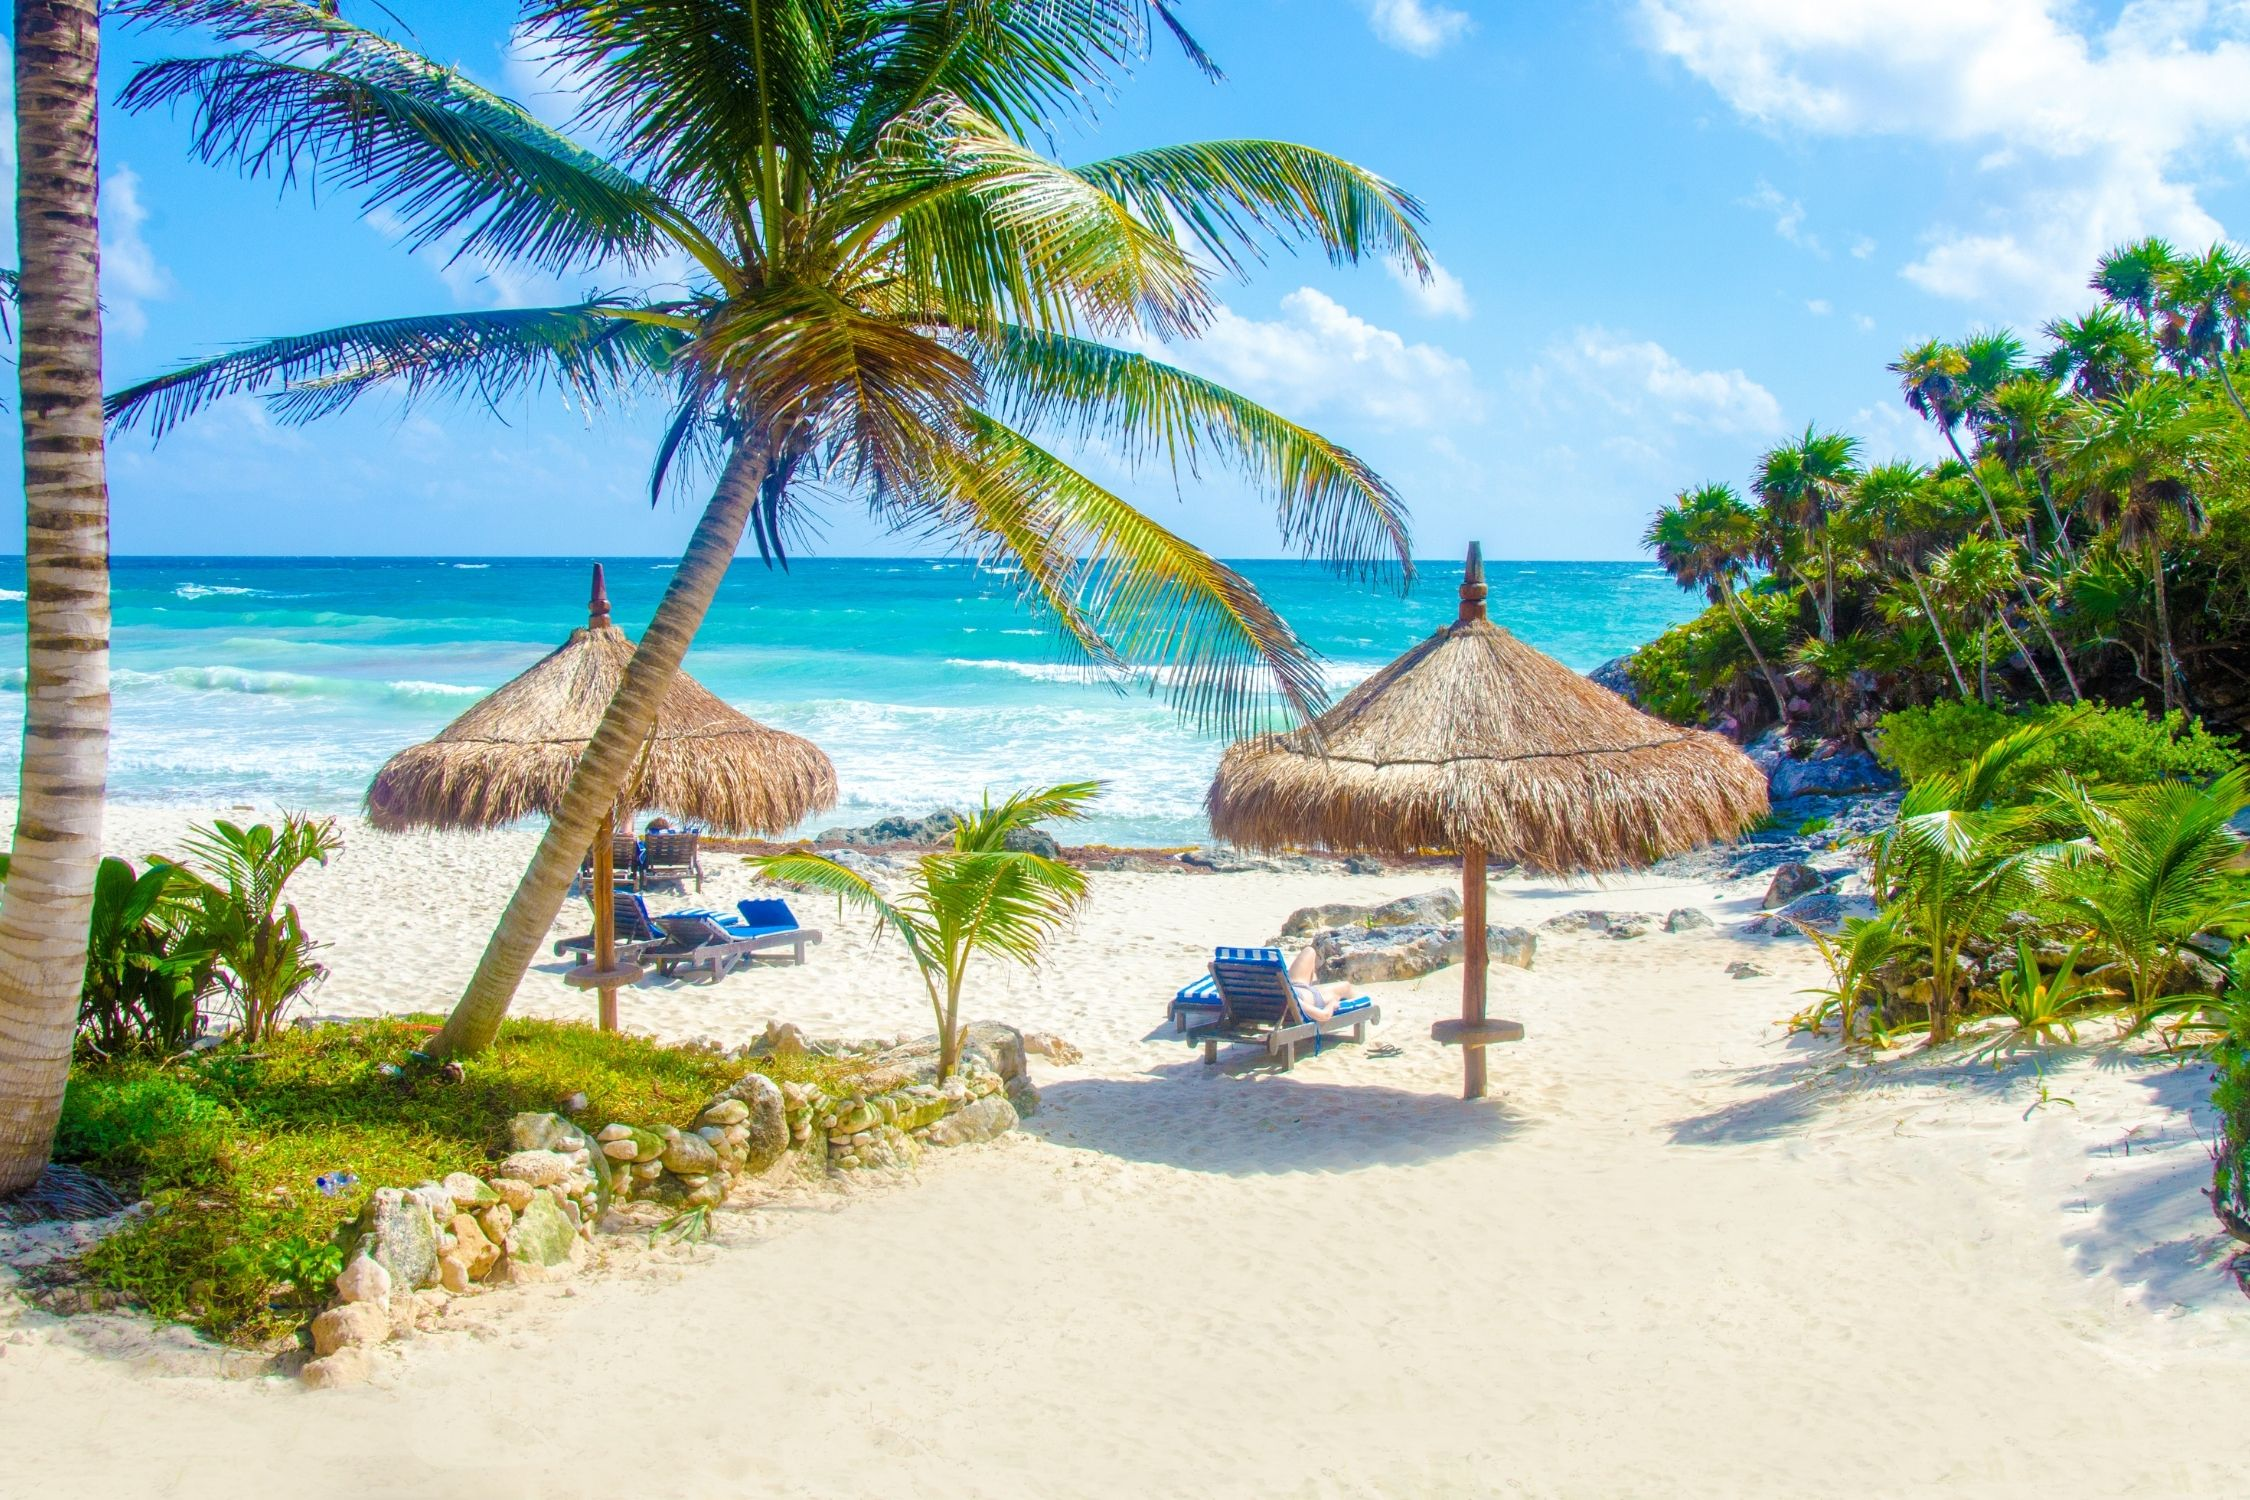 Weather in September in Tulum is perfect for lounging on the beach